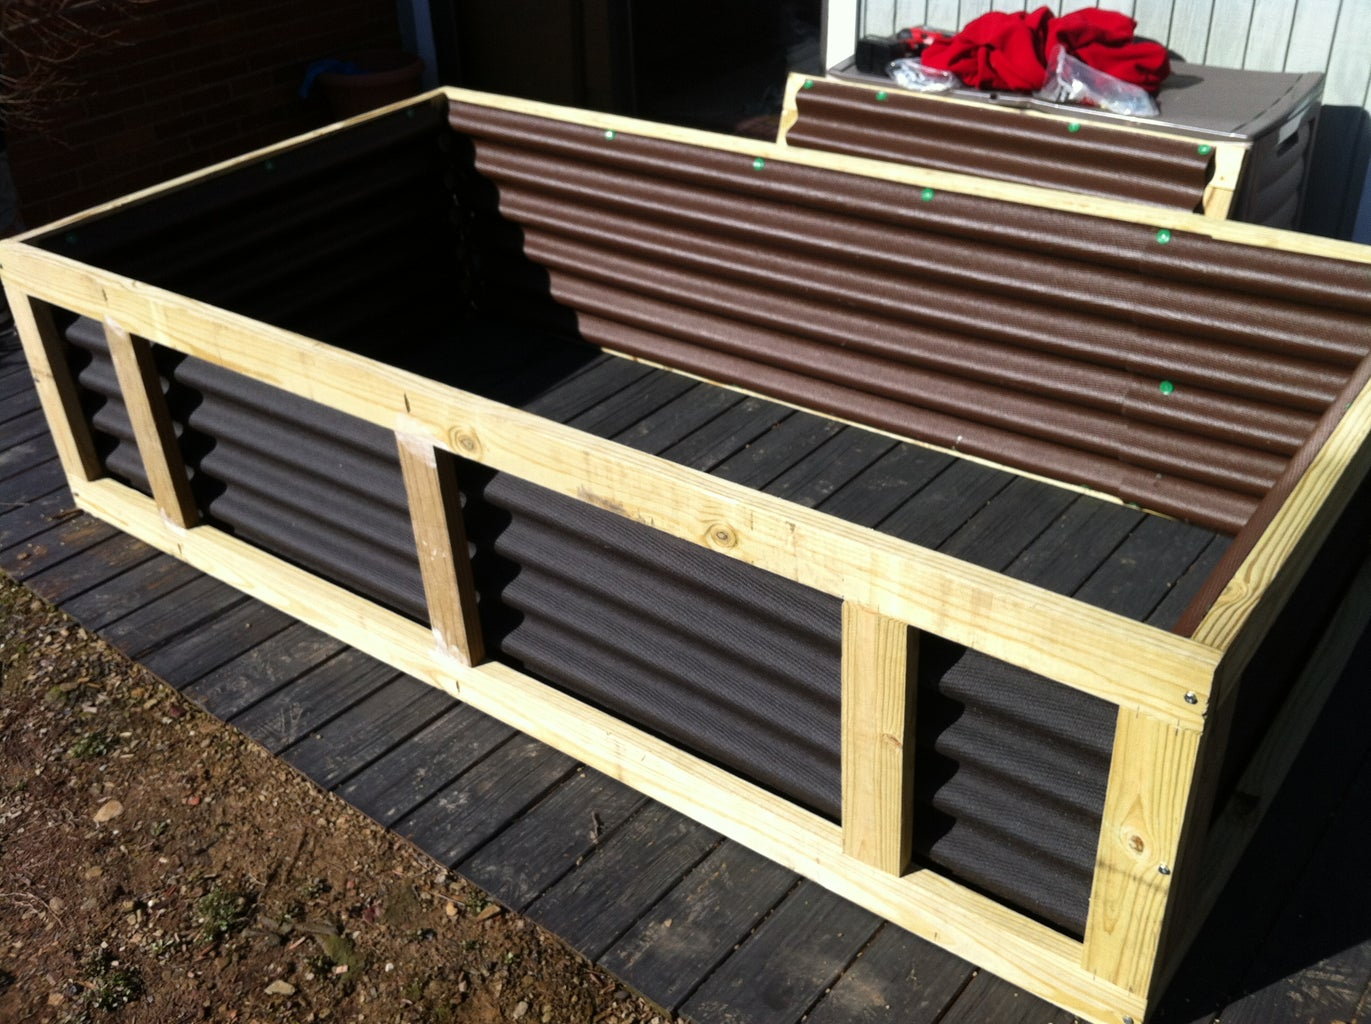 Ondura Step: Nail Roofing Material to Panels